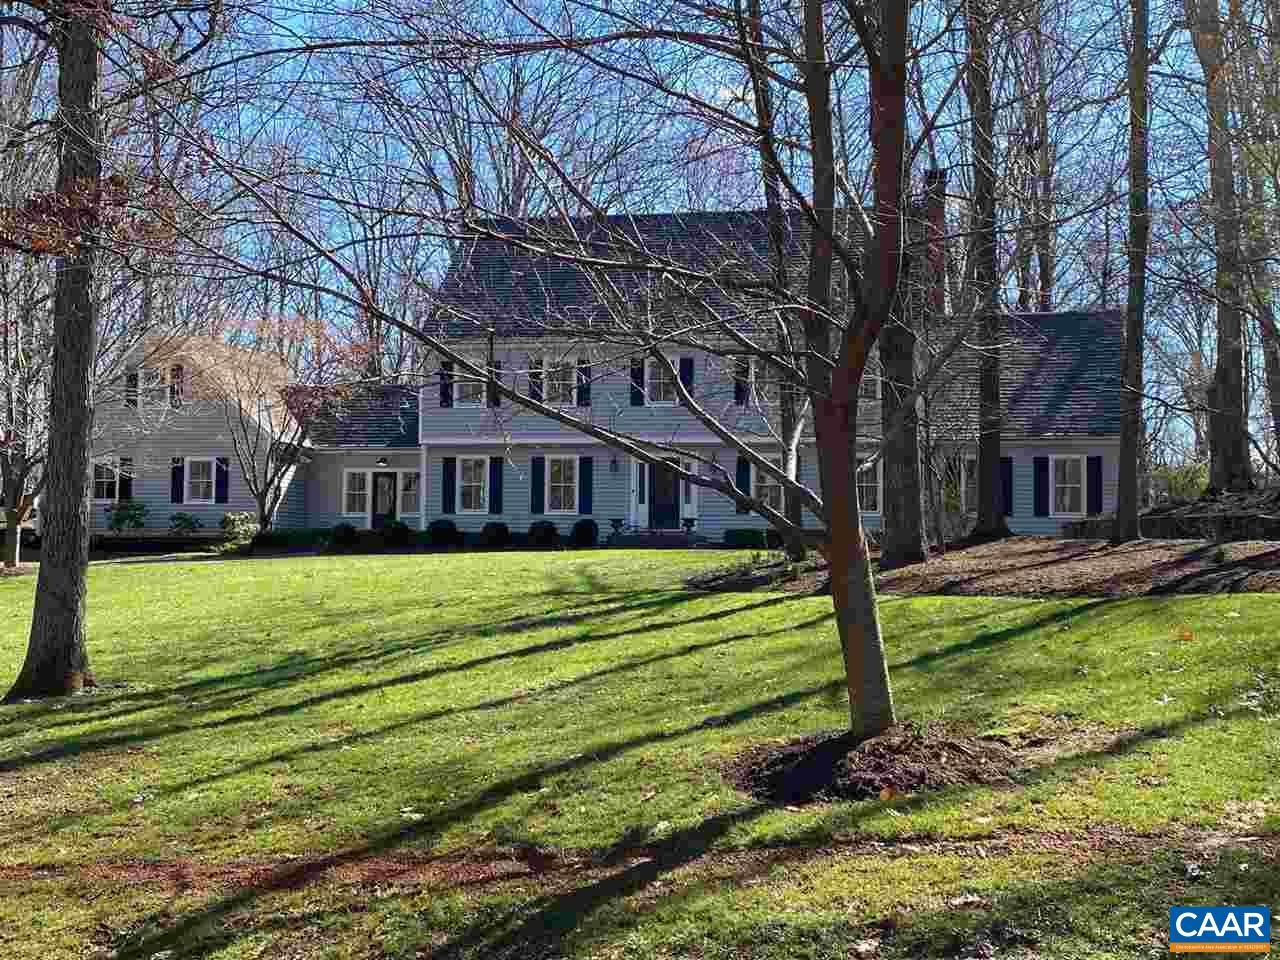 Spectacular renovation by Sage Construction. Updated plans include first floor in-law suite, above garage bonus room, home office, mud room and much more. New Gutters, downspouts, snow guards, windows, skylights, tankless hot water, Mitsubishi units in garage space, exterior and interior painting except for basement area. Light filled eat-in kitchen, cherry cabinets, marble countertops, breakfast bar, and new large kitchen window  over looking gardens and stonework. Pool removed. Partially Finished basement connects to large finished storage room. Enjoy easy access to Boars Head Sports Club, Birdwood Golf Course & gorgeous Ragged Mountain Reservoir with biking, running and walking trails. Close to Ednam Forest private access to reservoir.